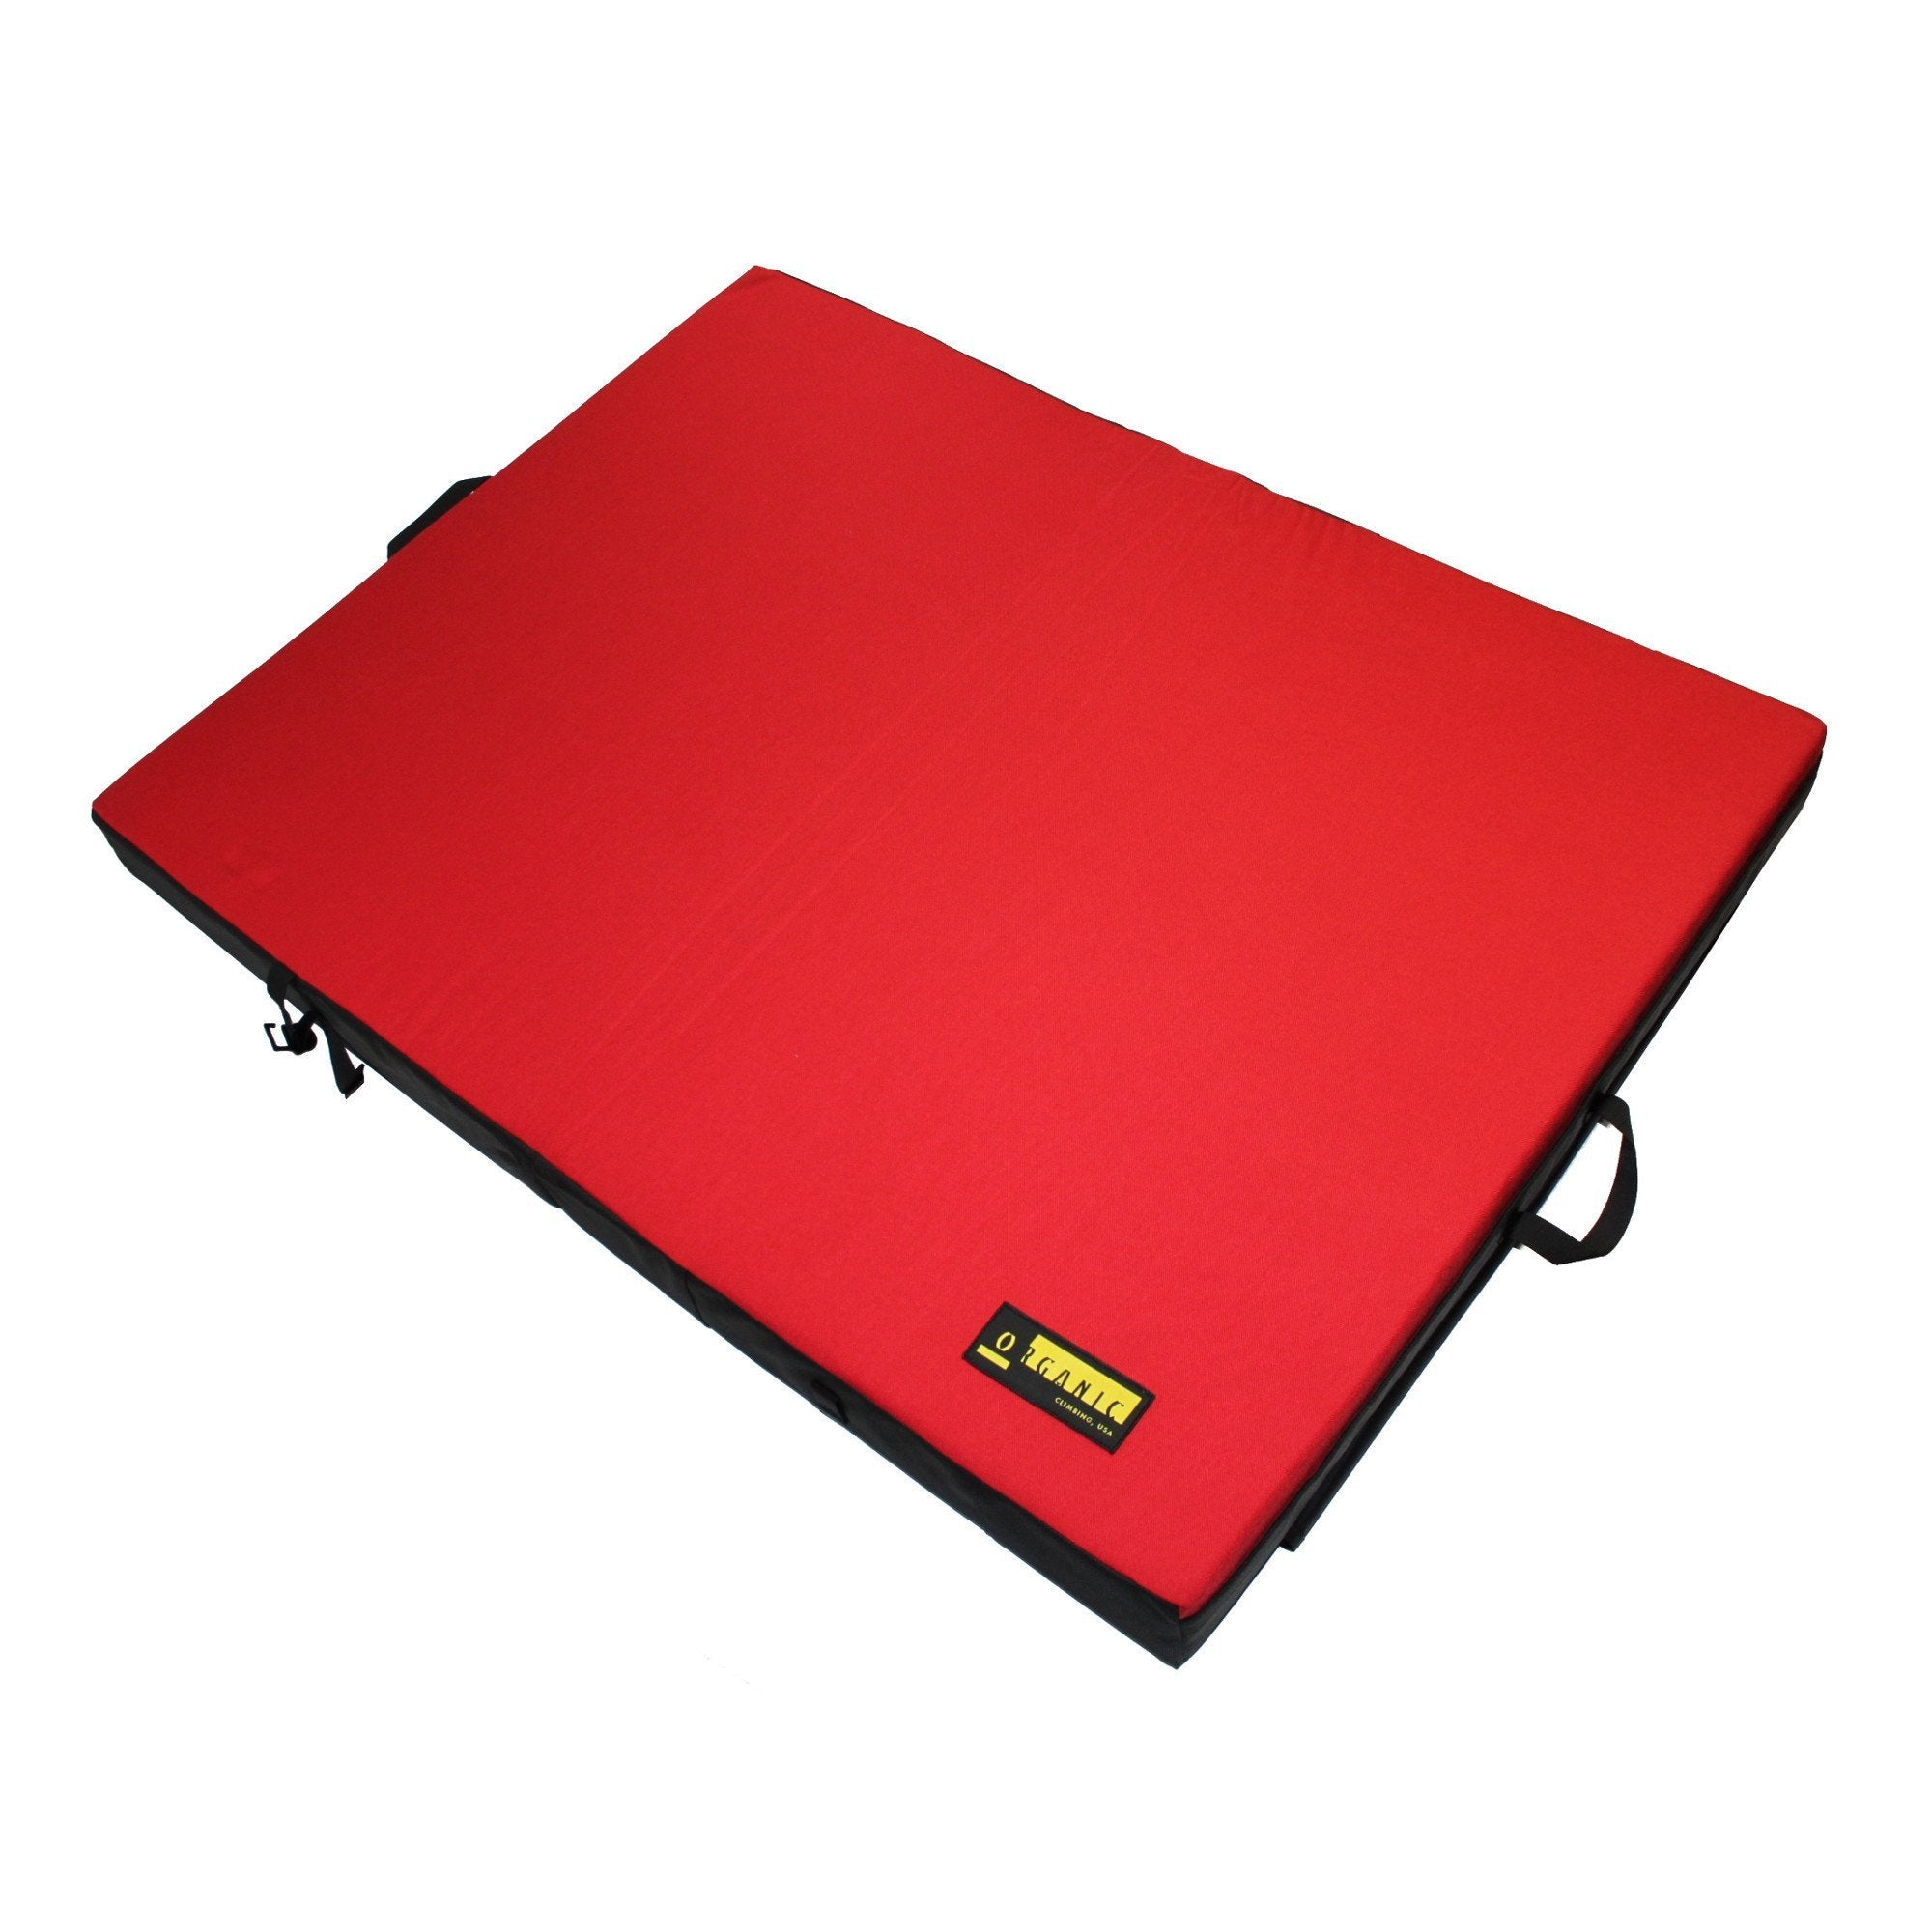 Organic Full Pad, bouldering crash pad shown laid lat in red colour